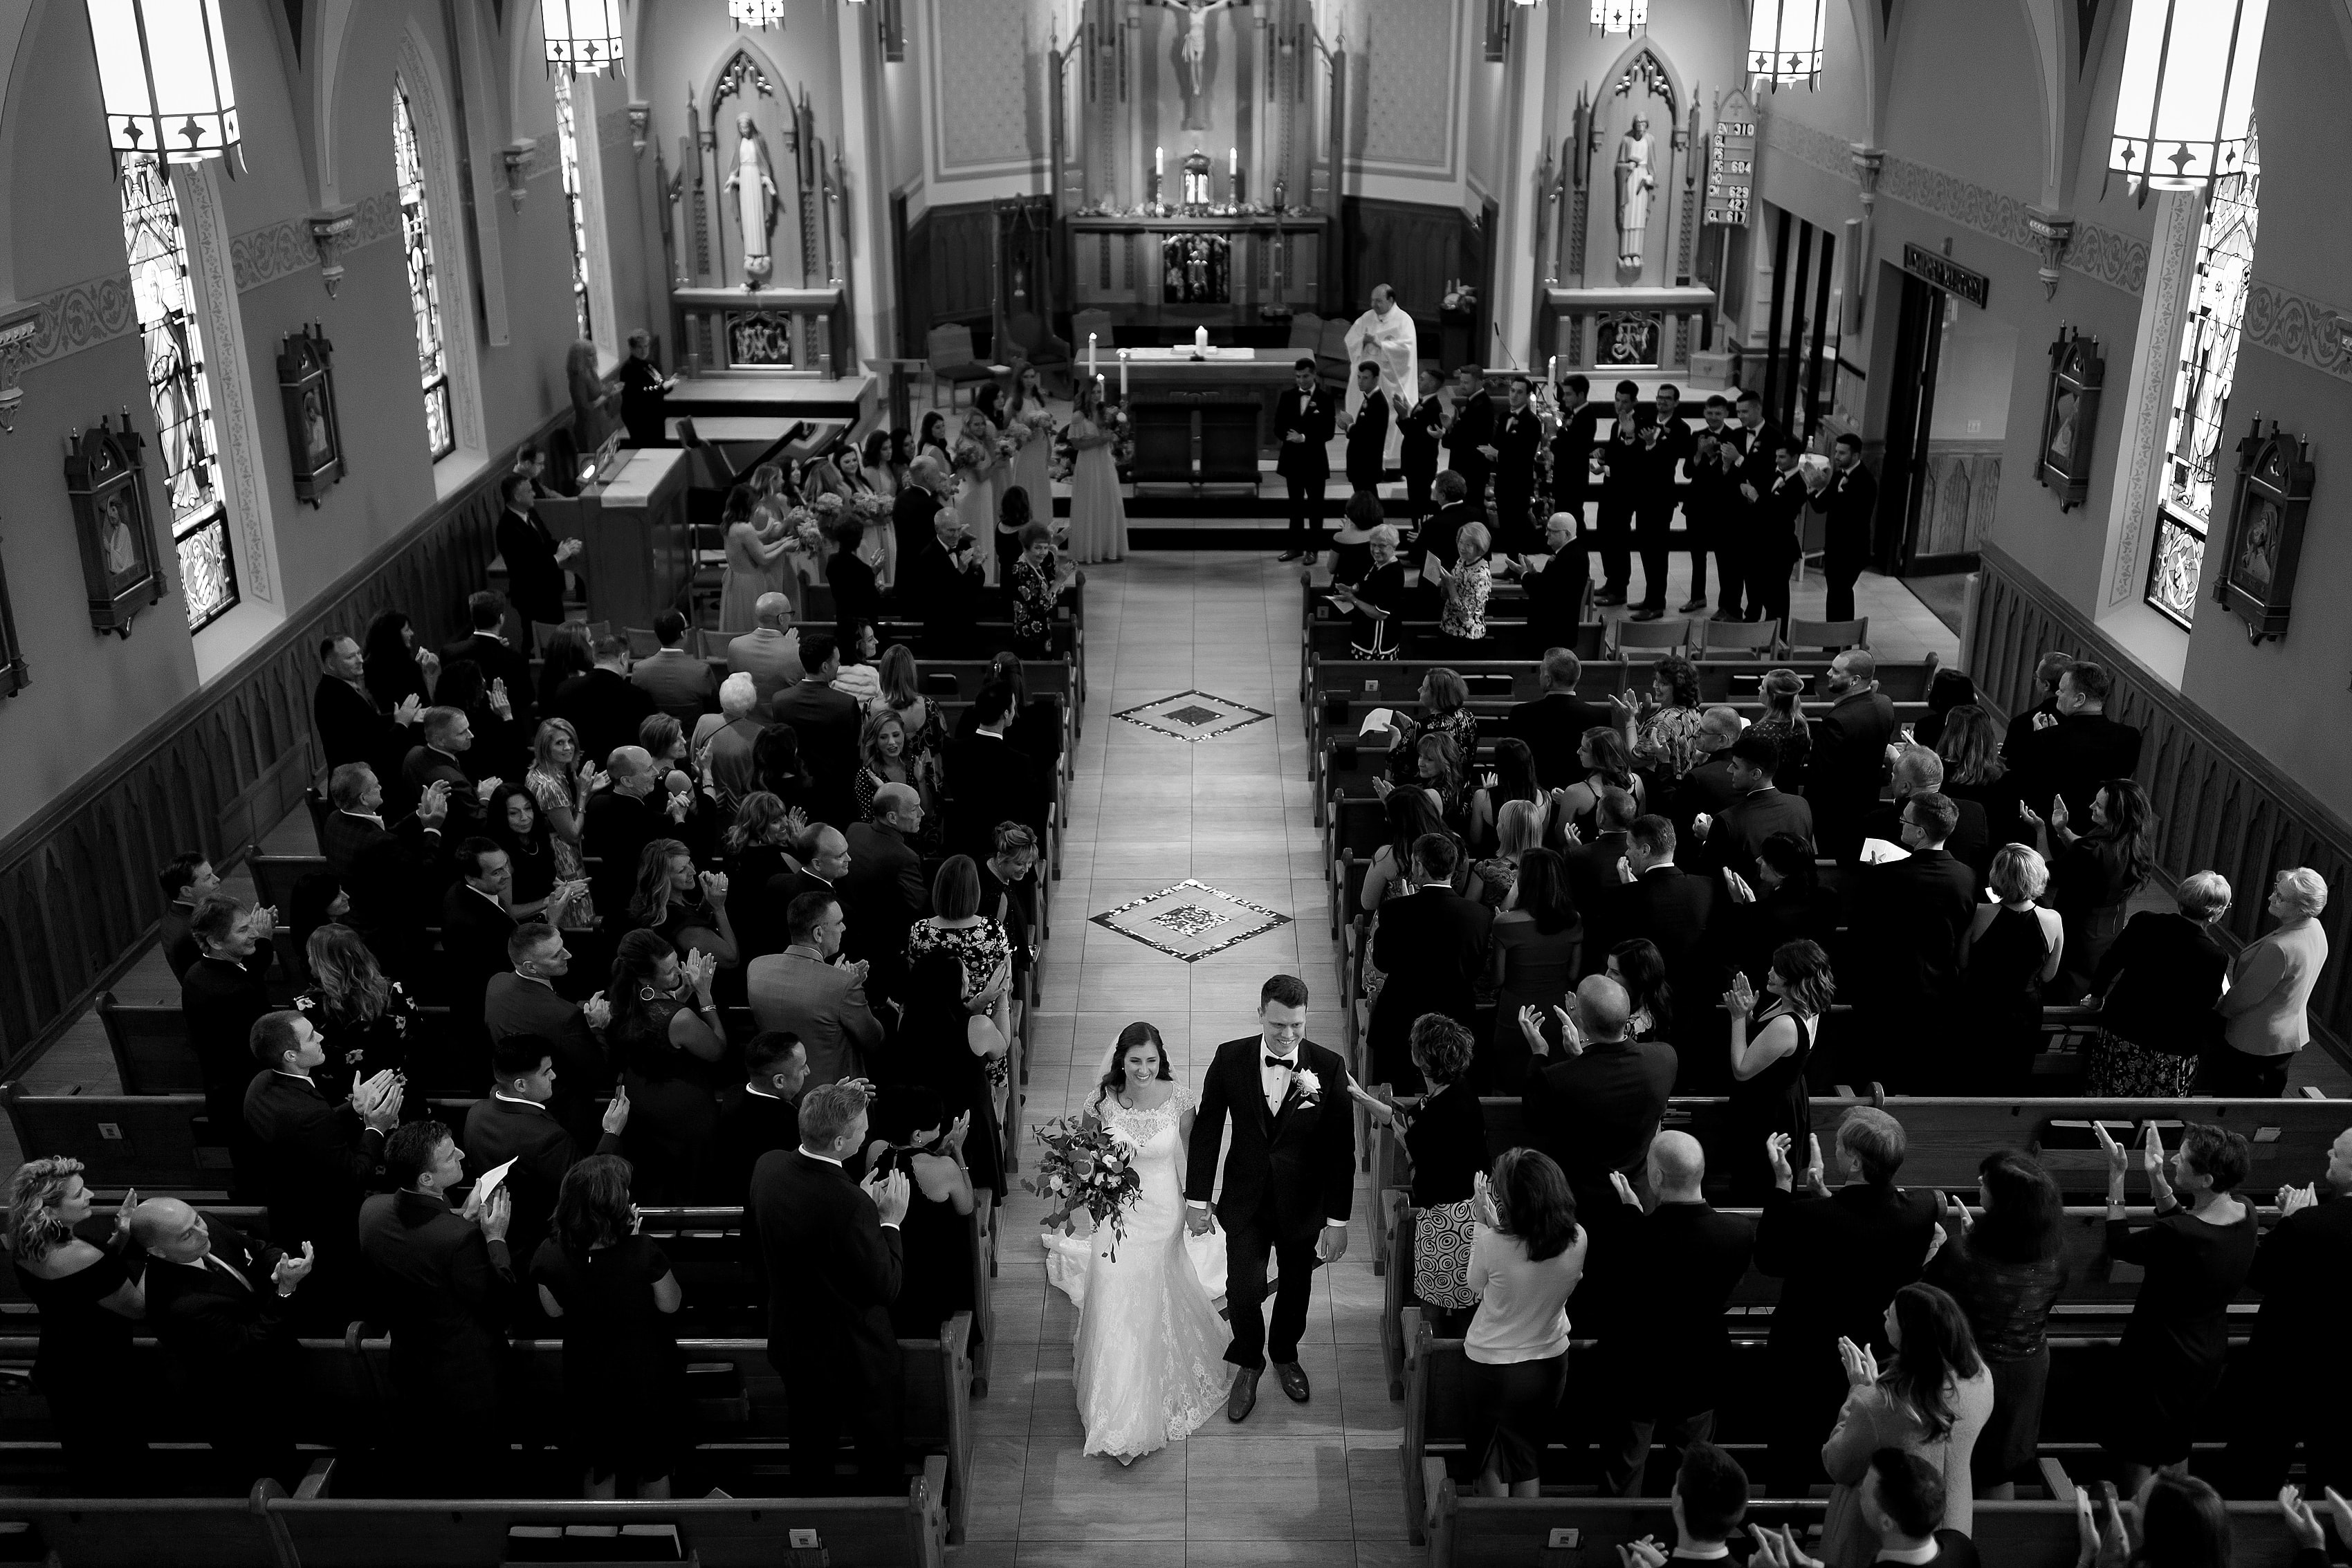 Bride and groom walk back down the aisle after wedding ceremony at St. Francis Church in Lake Geneva, Wisconsin